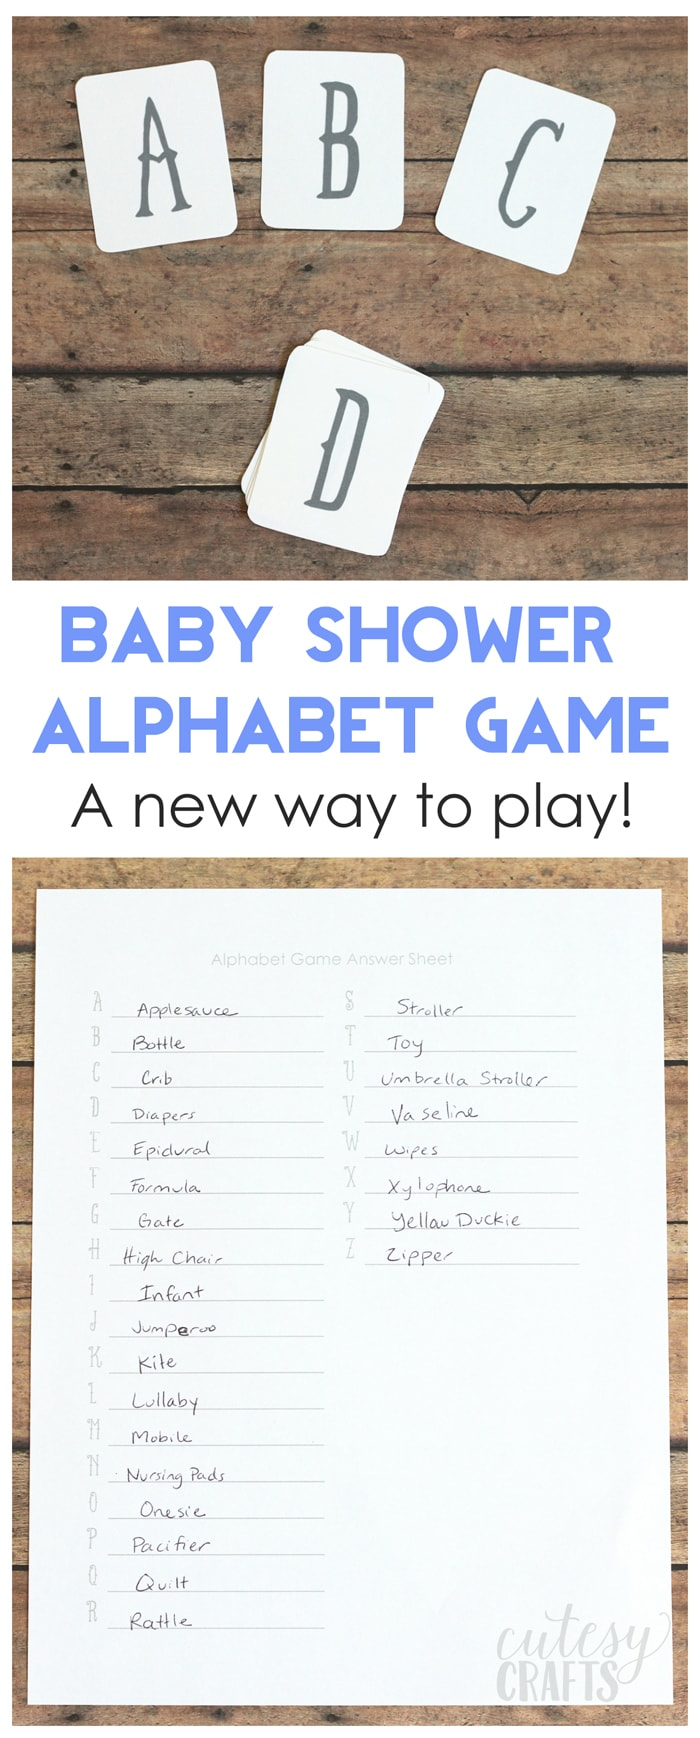 An new way to play the alphabet baby shower game! - Free printable cards!